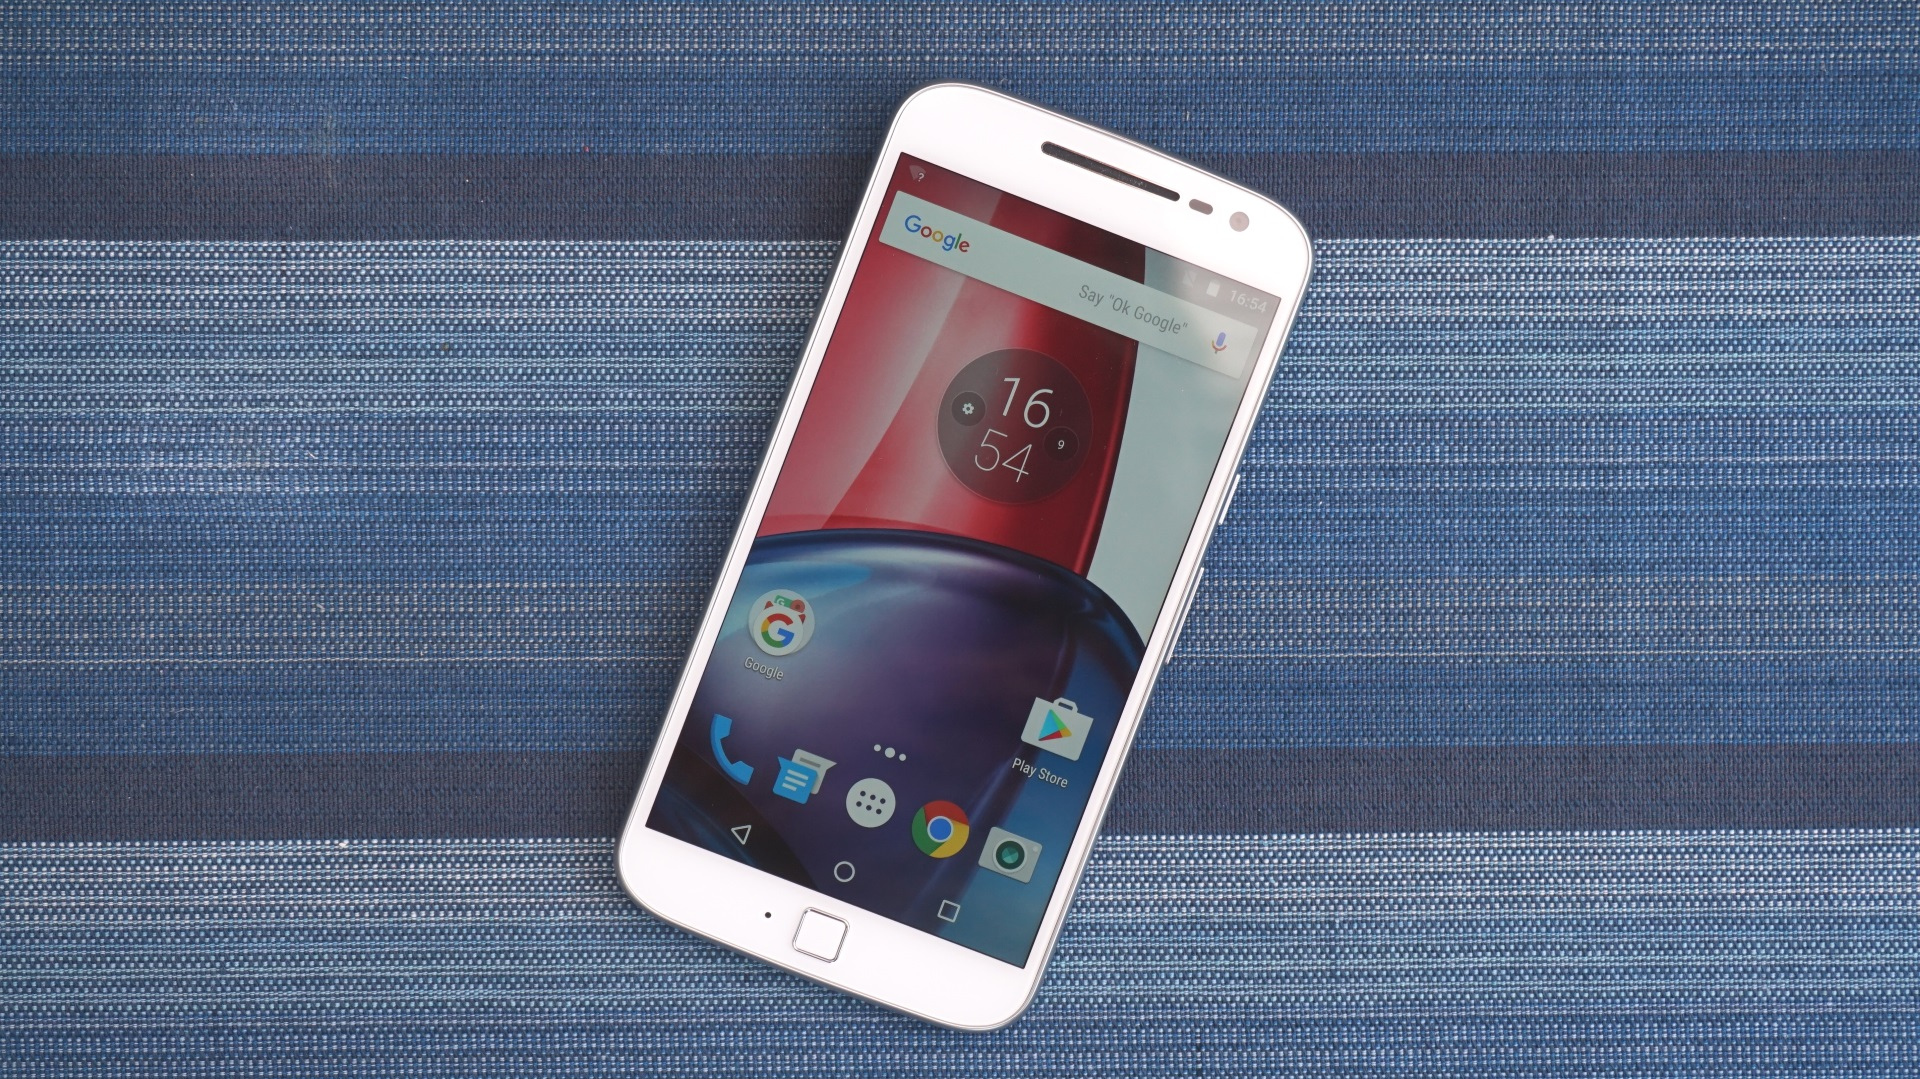 Moto G4 Plus review - the one true king? | Expert Reviews